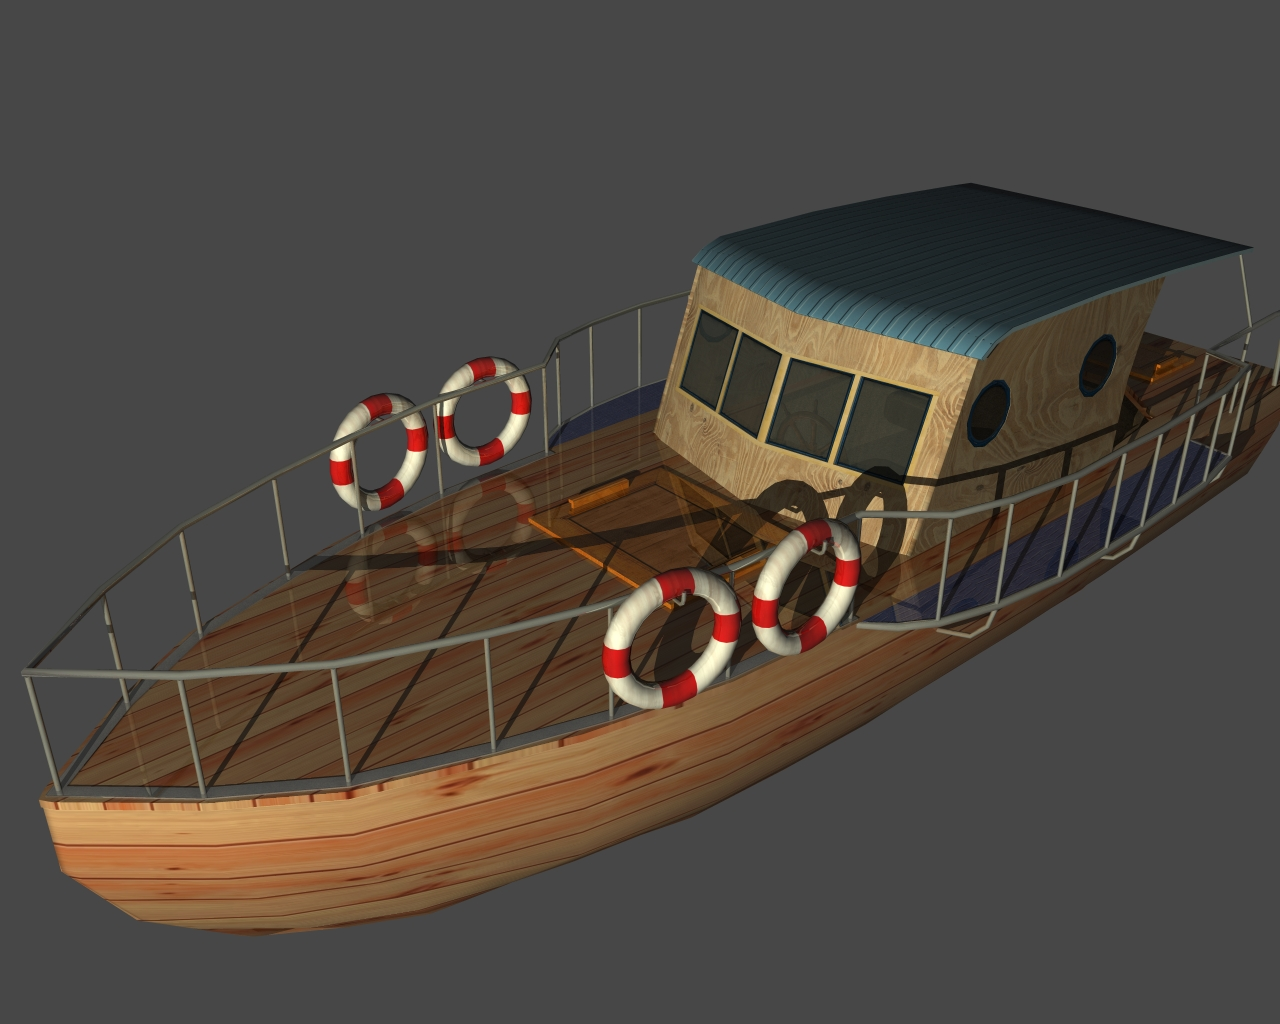 new boat 3d model 3ds 165404